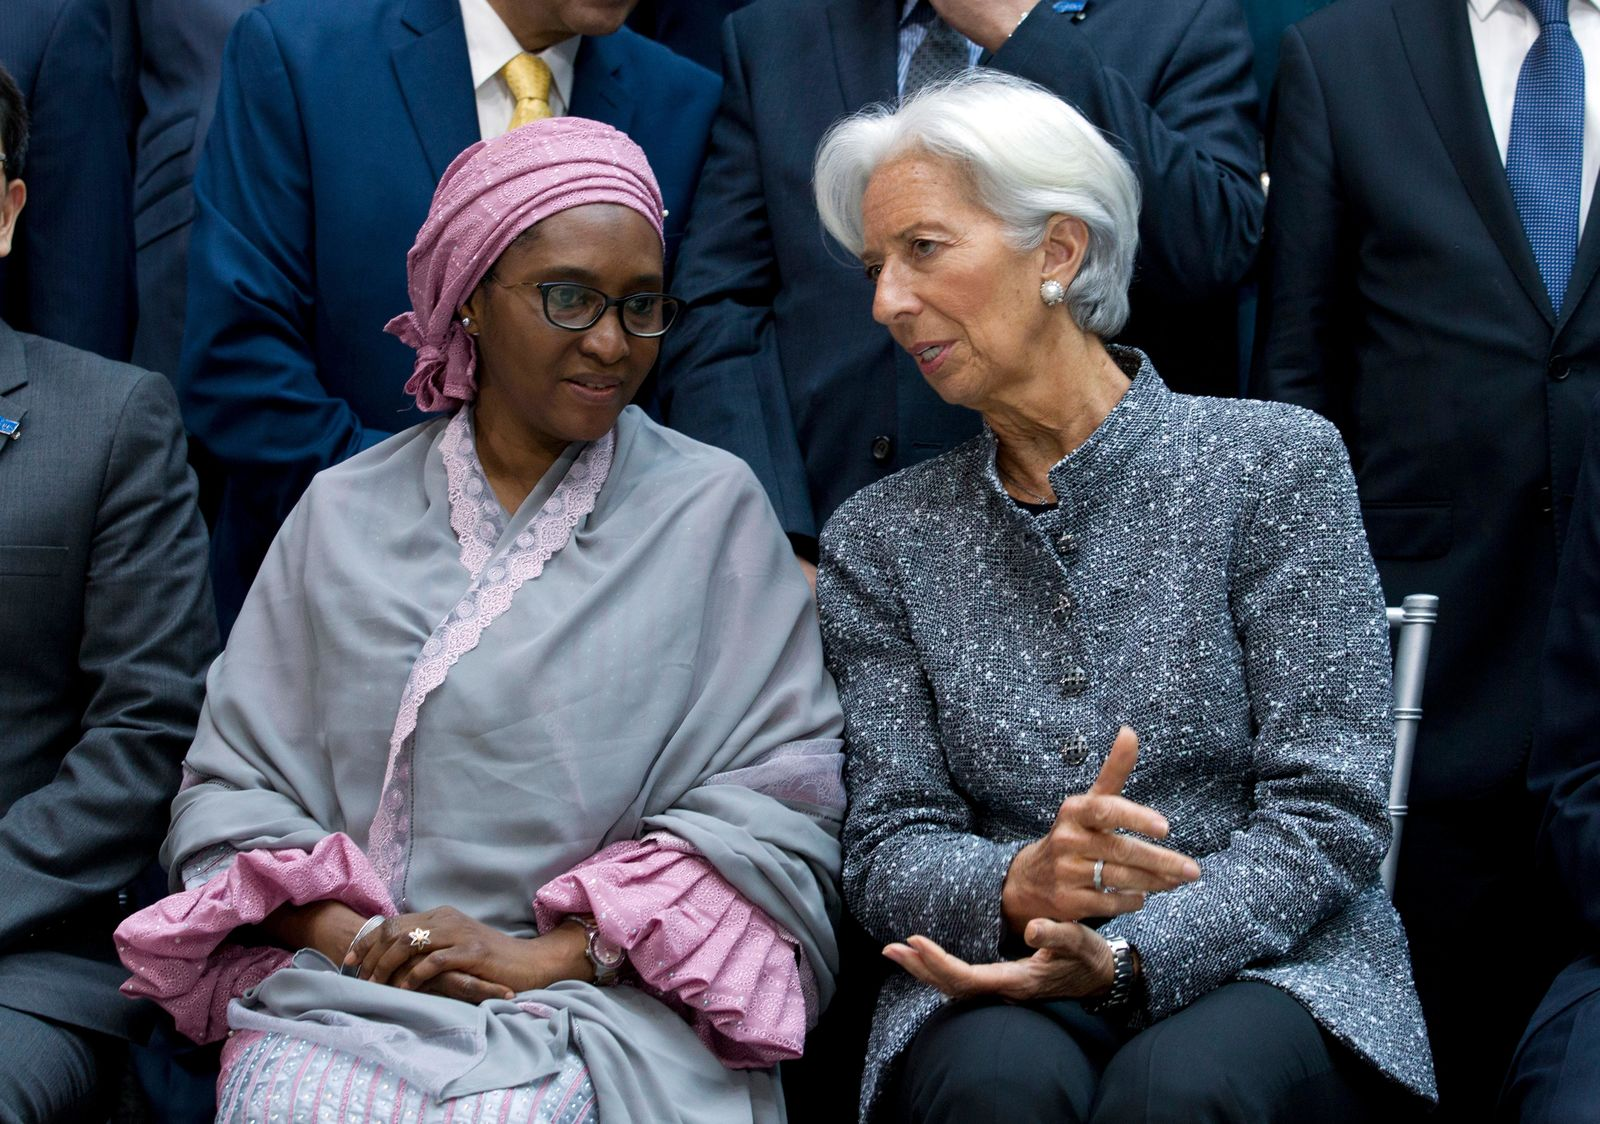 International Monetary Fund (IMF) Managing Director Christine Lagarde speaks with Nigeria's Finance Minister Zainab Ahmed, during the International Monetary Fund IMF Governors group photo at the World Bank/IMF Spring Meetings in Washington, Saturday, April 13, 2019. (AP Photo/Jose Luis Magana)